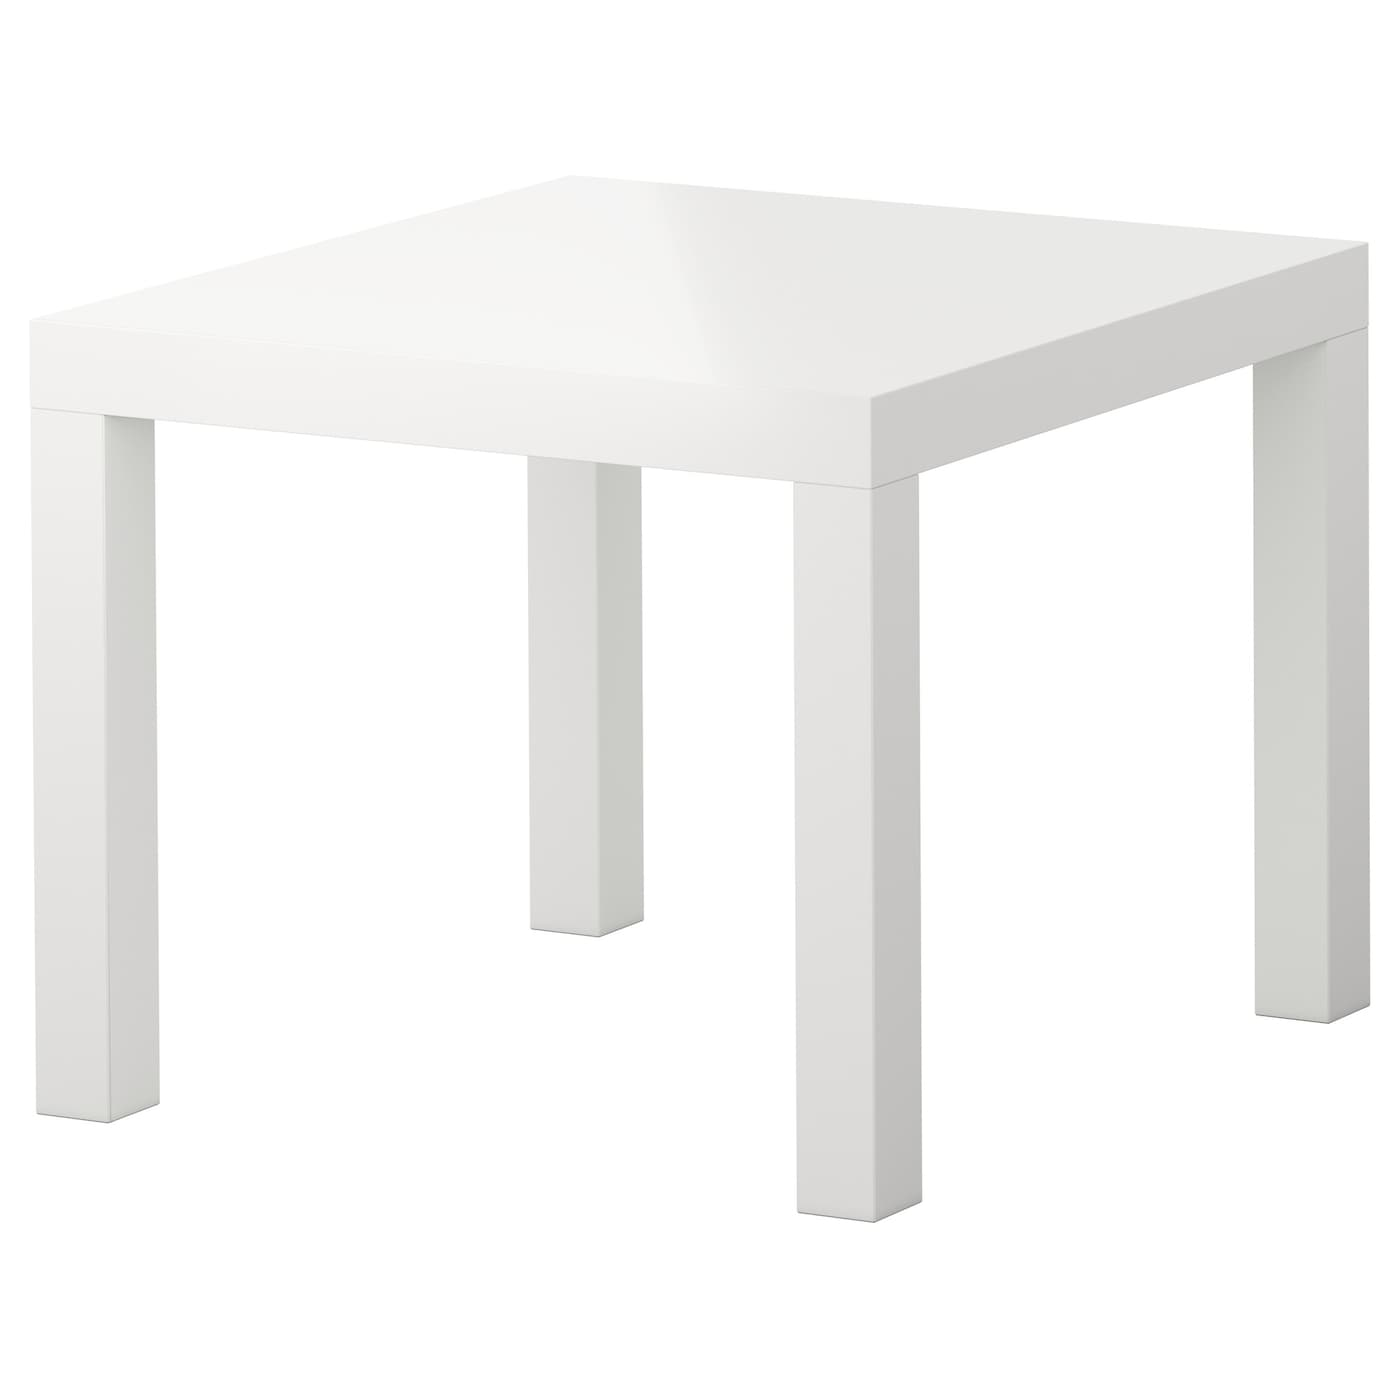 Table basse table basse design ikea for Ikea besta table d appoint